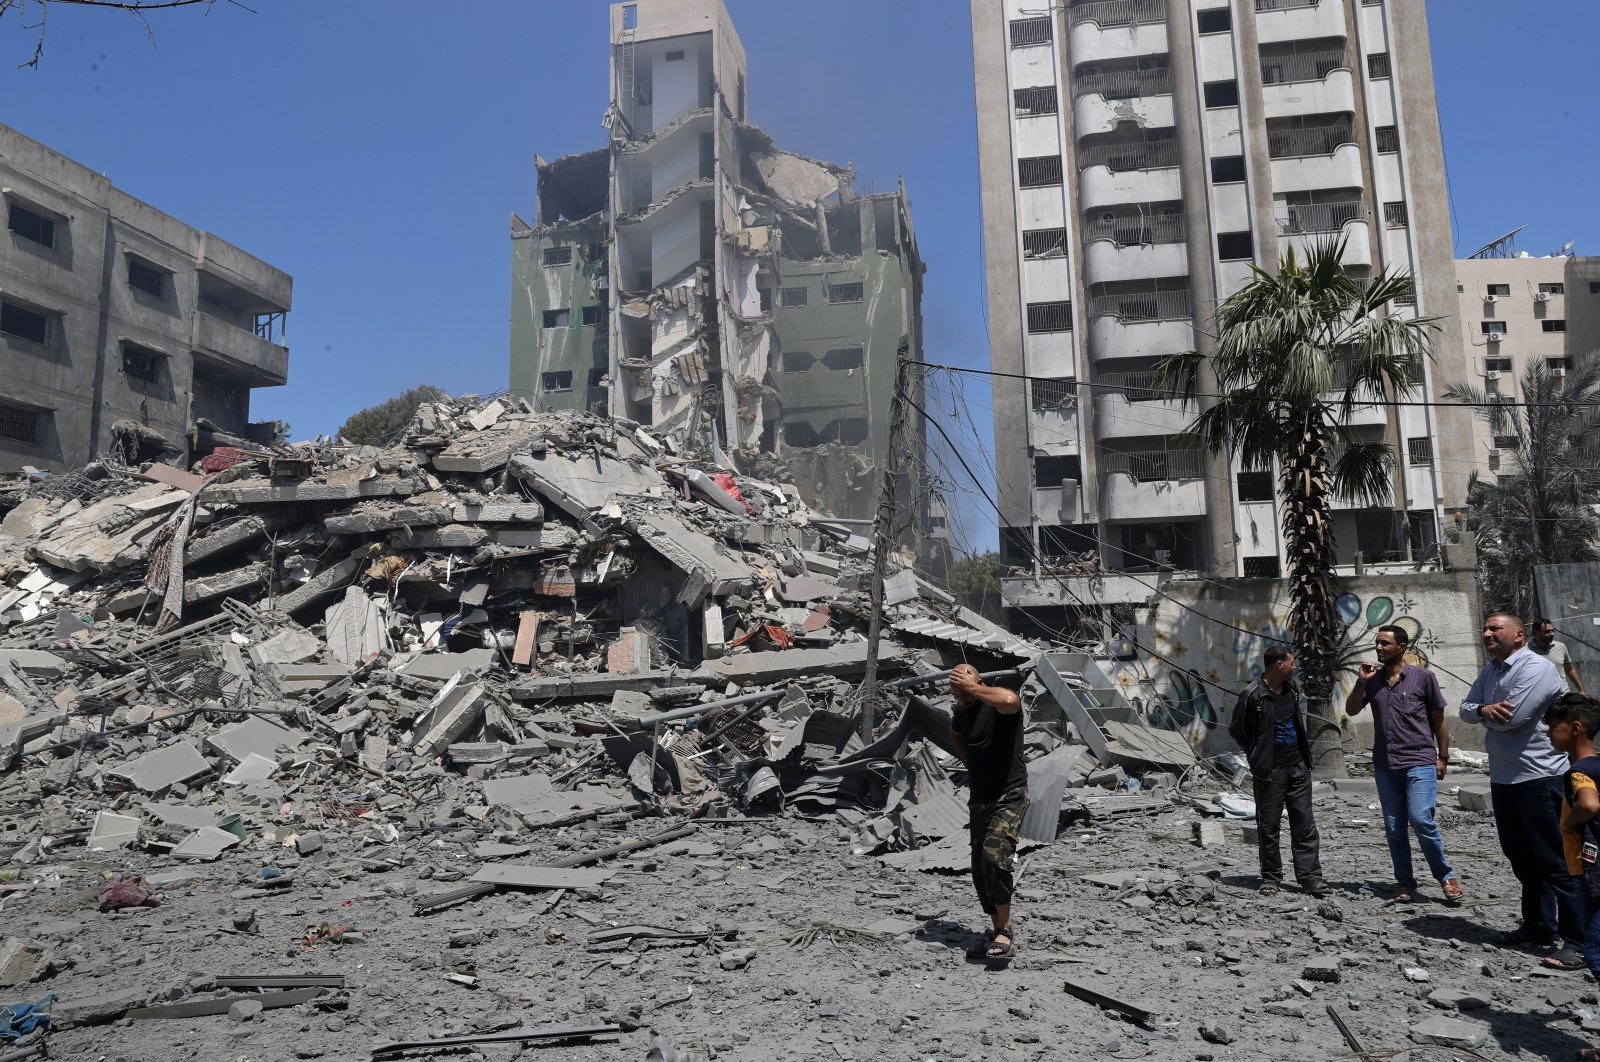 People inspect the rubble of a destroyed residential building that was hit by an Israeli airstrike, in Gaza City, Palestine, May 16, 2021. (AP Photo)